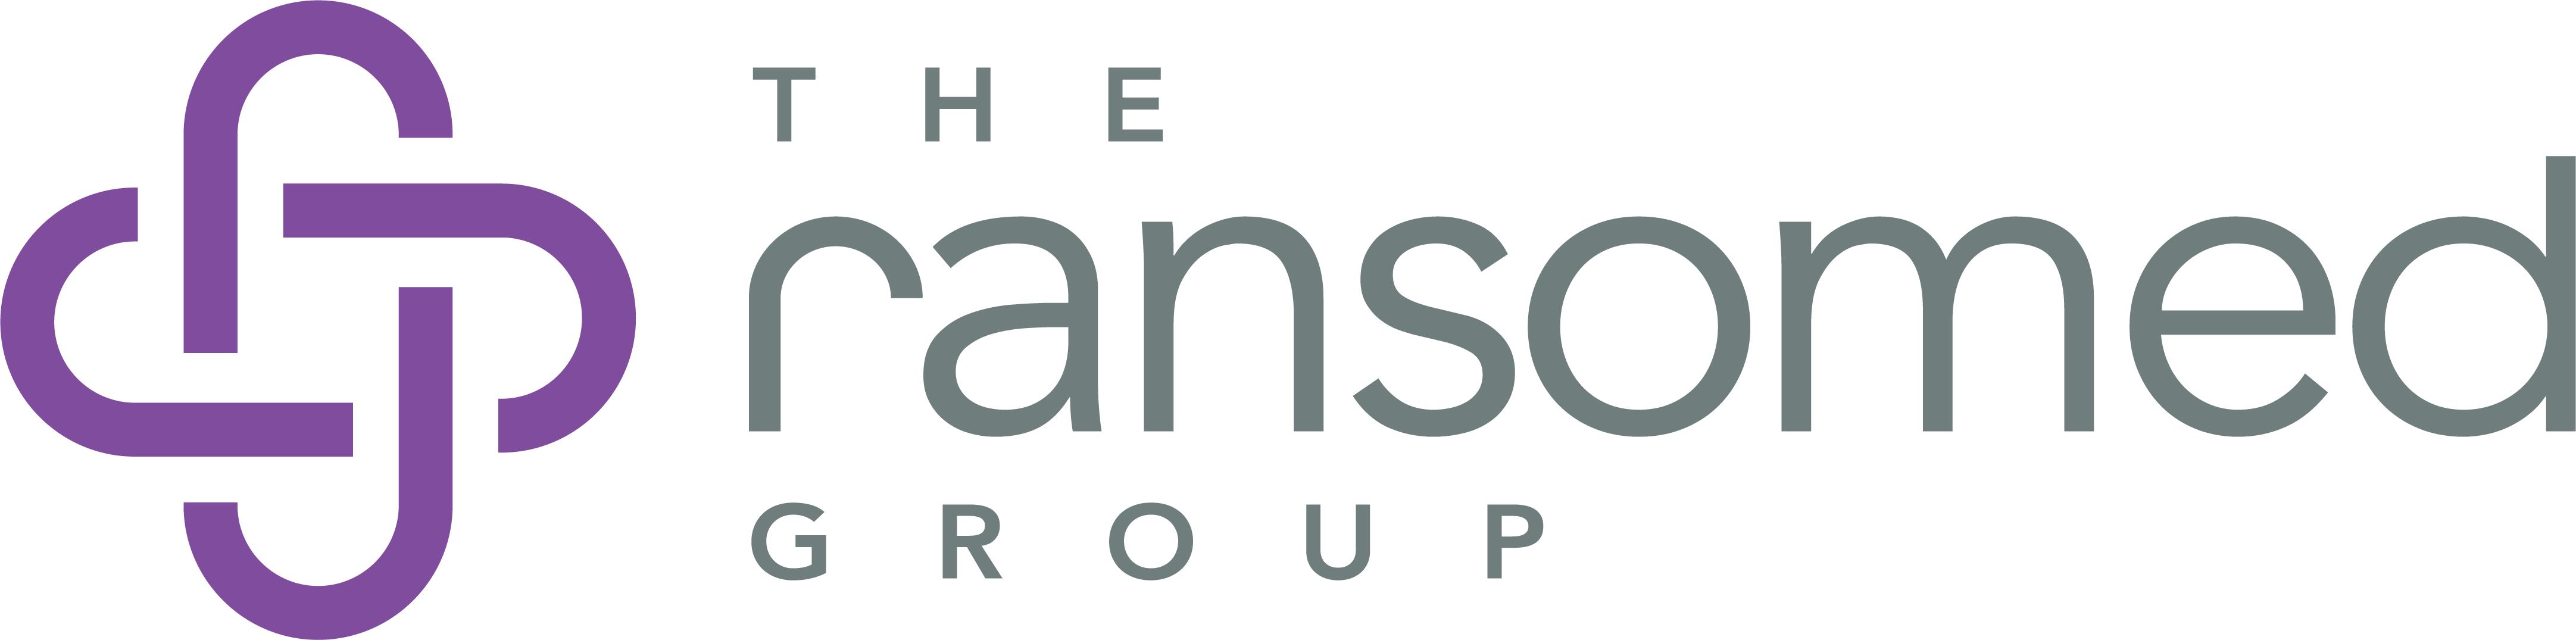 The Ransomed Group